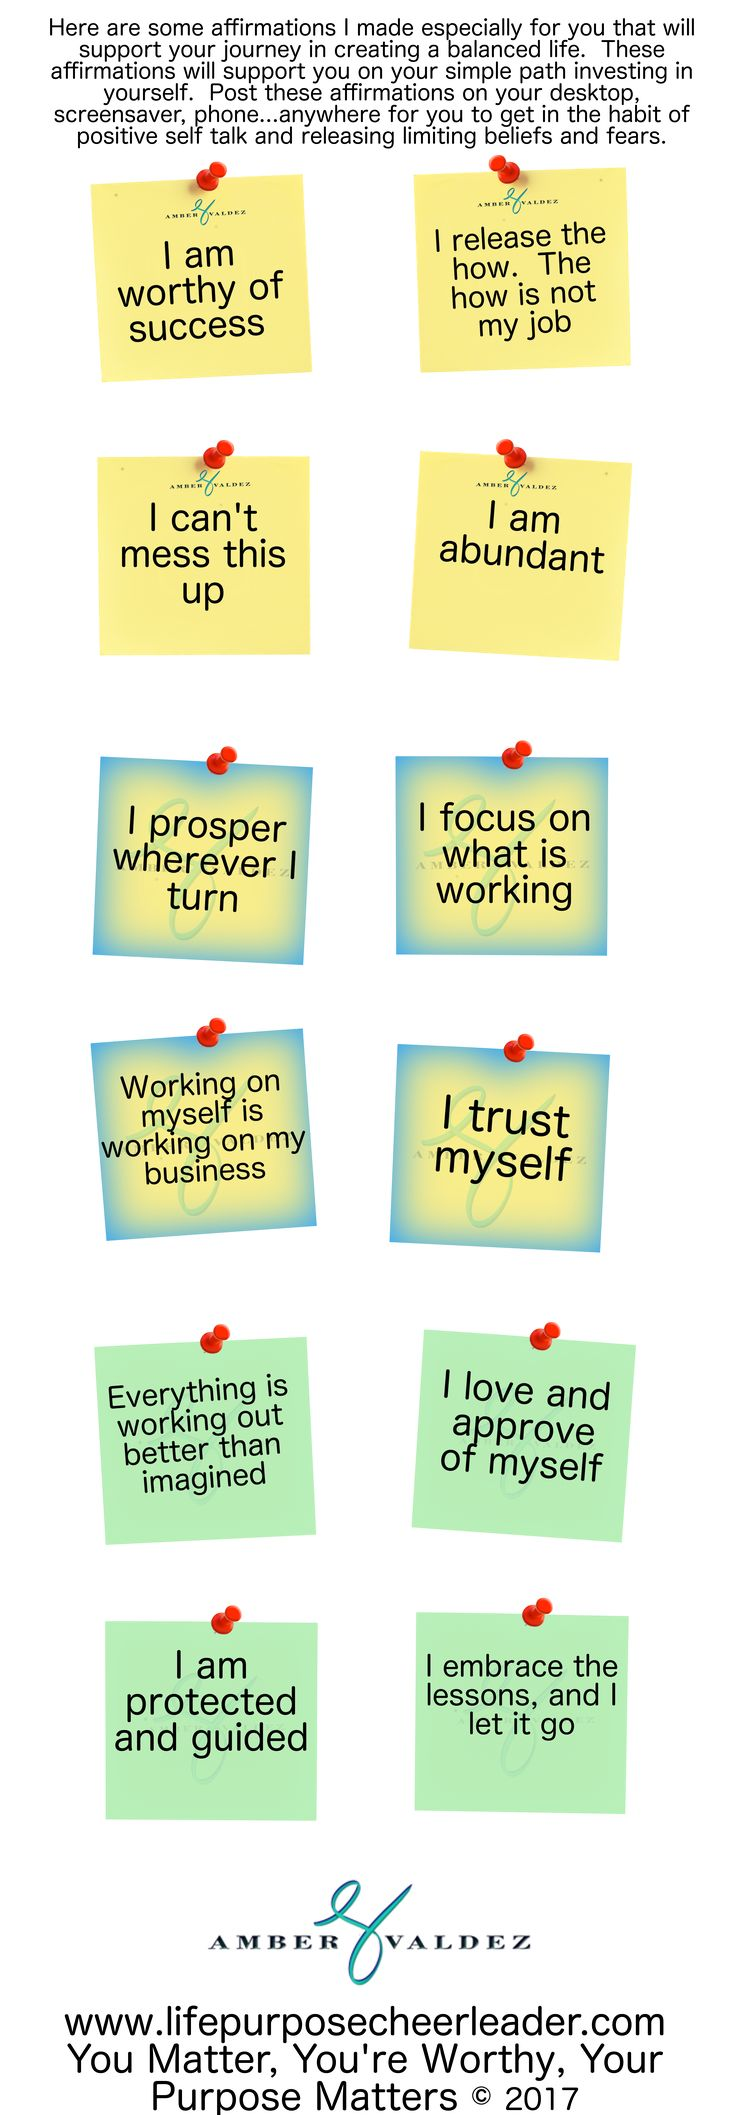 Stickie Affirmations from the Life Purpose Cheerleader.  Save and pin to desktop, screensaver, phone...anything you use daily to get yourself in the habit of positive self talk.